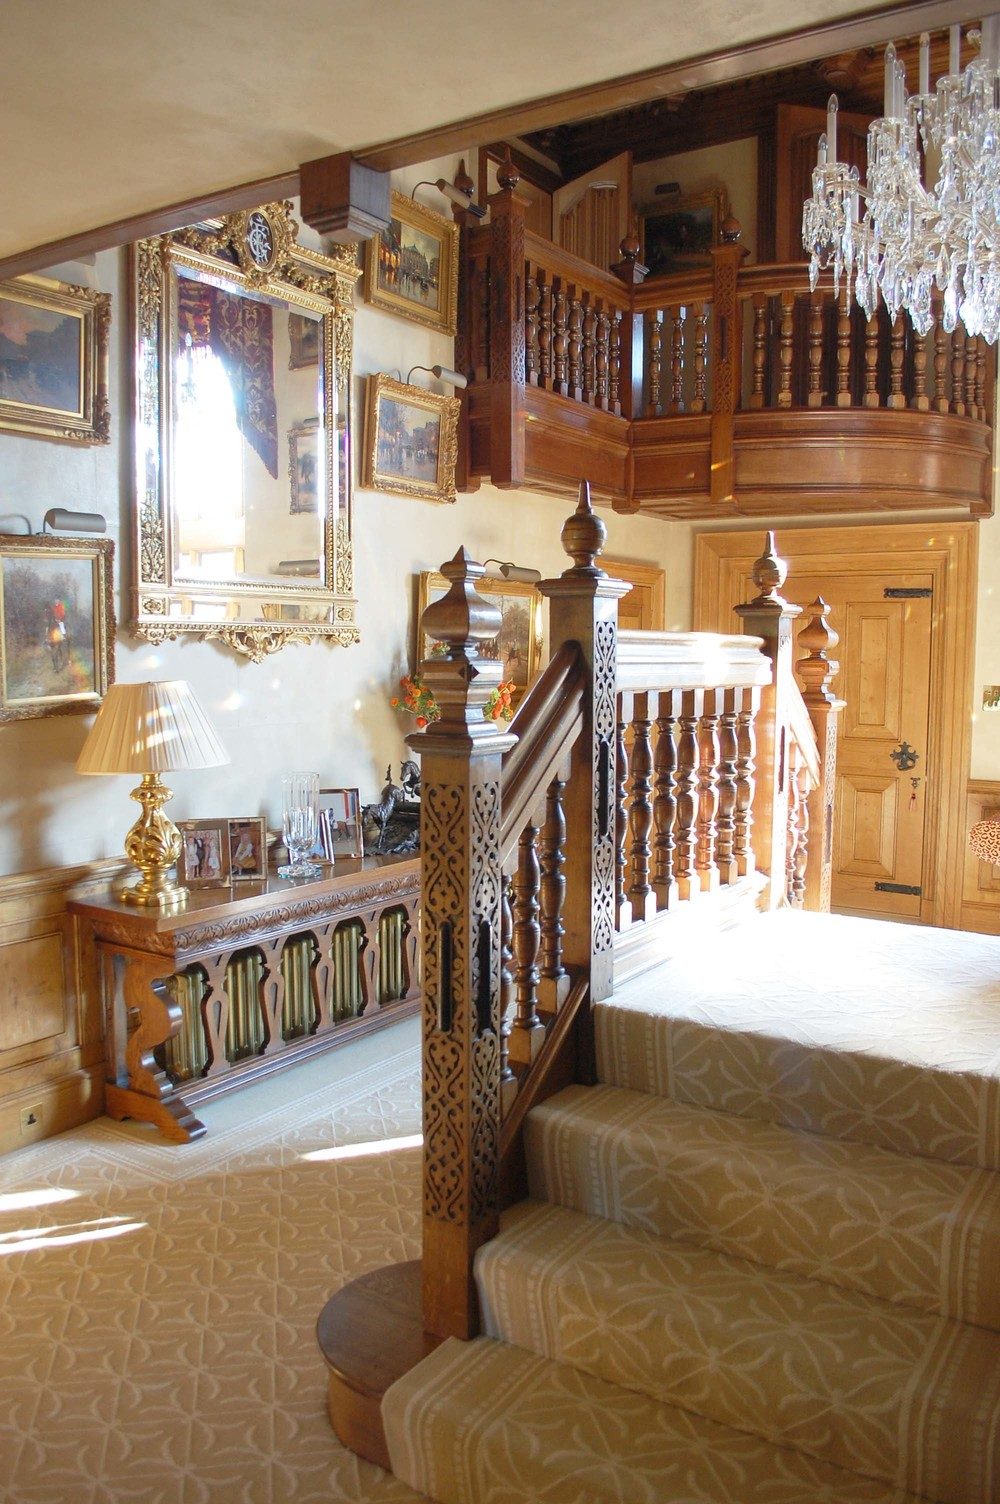 16th and 17th century Gothic and Tudor style period staircases and balsutrading hand carved newel posts and finials